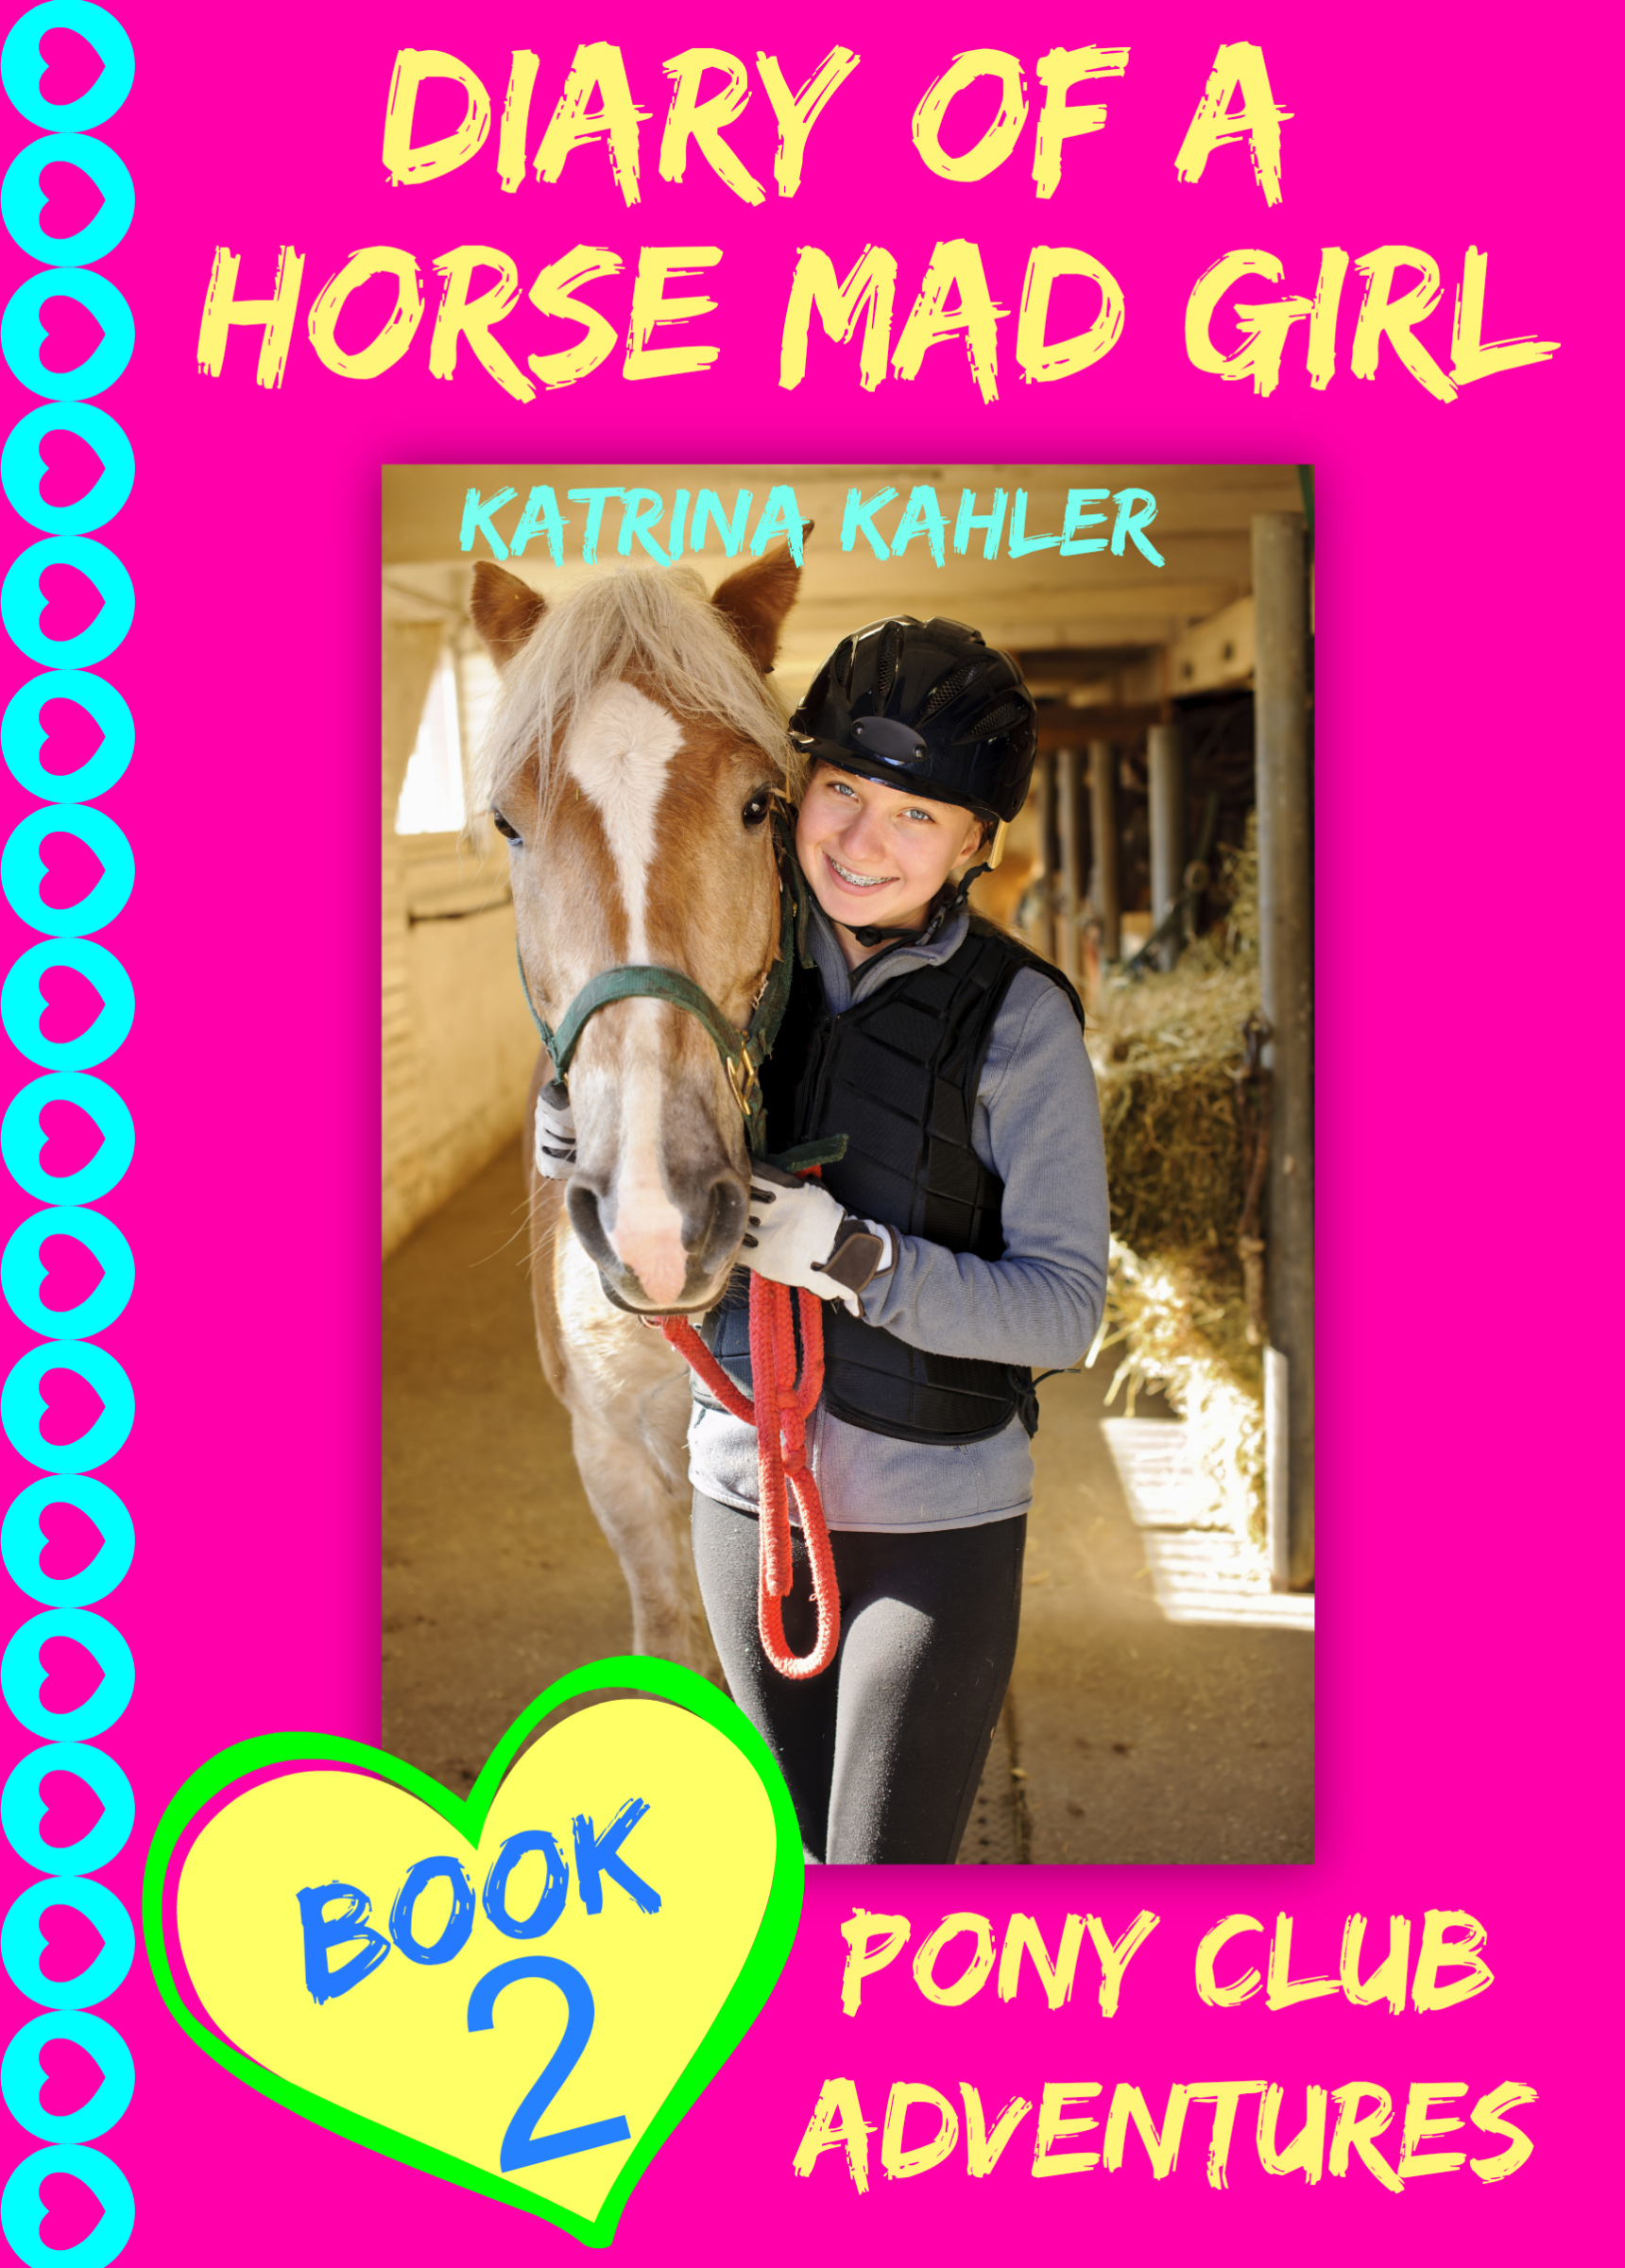 Diary of a horse mad girl - book 2 - pony club adventures